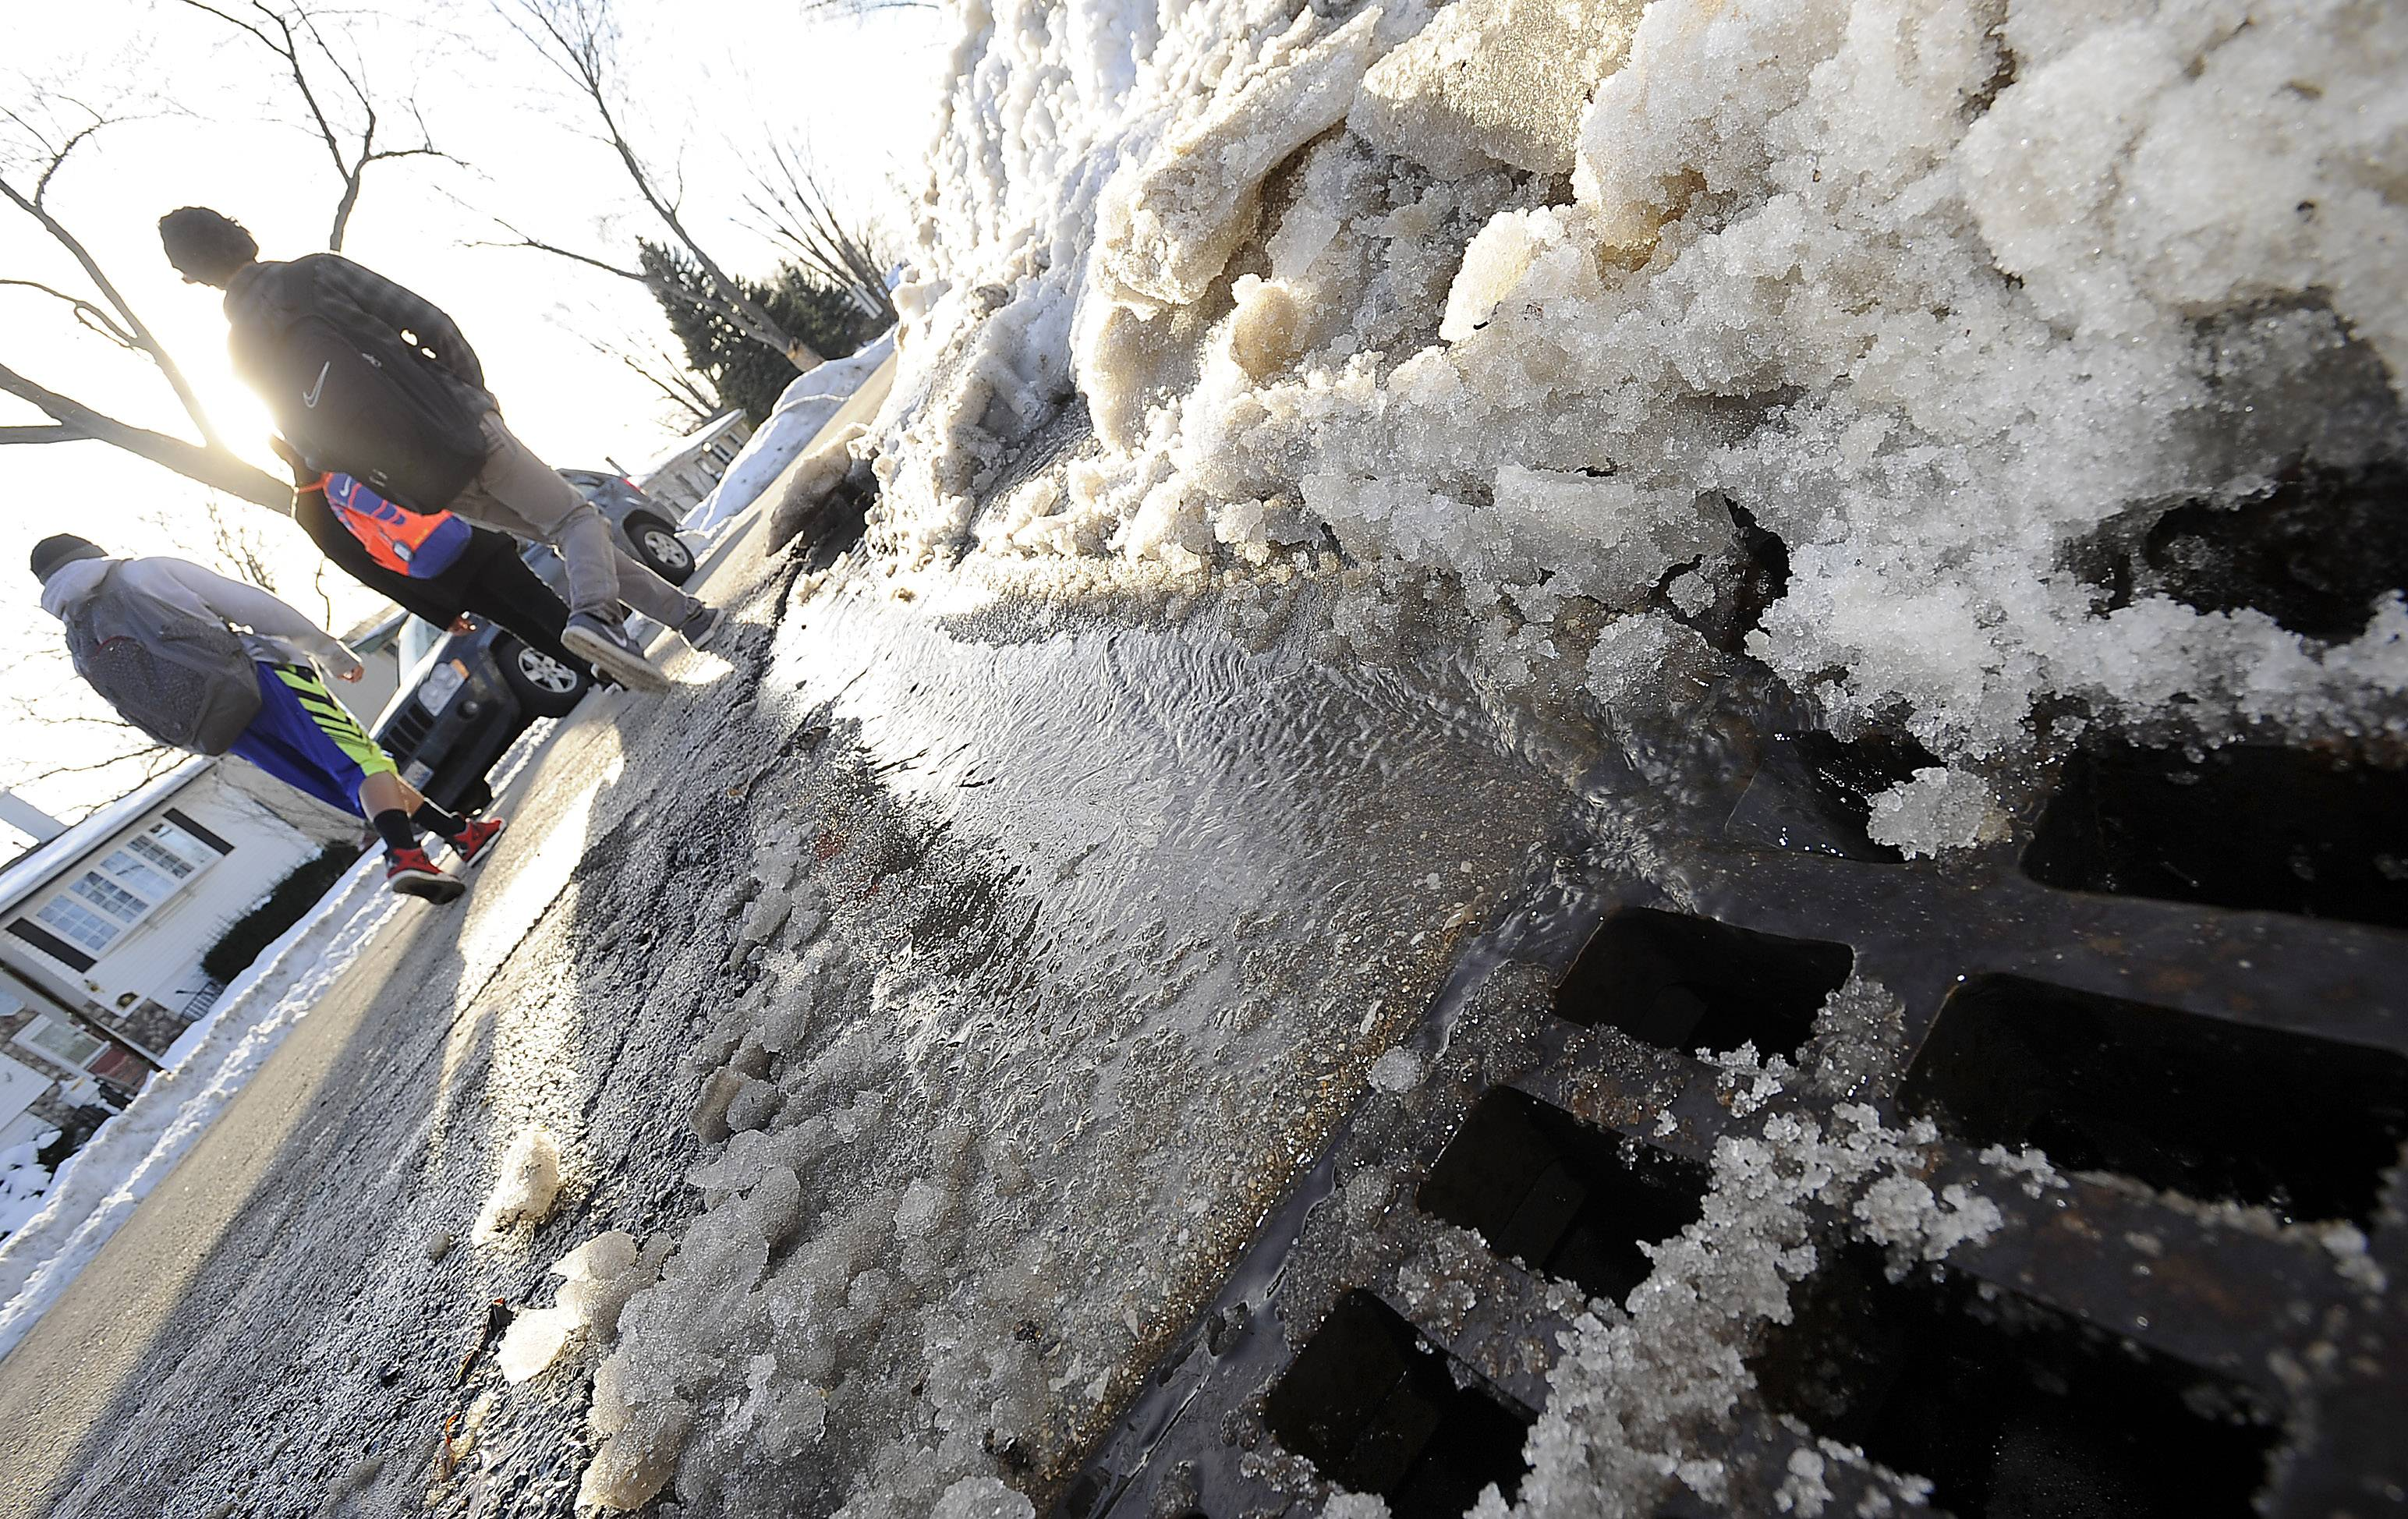 Water flows freely along a Wheeling street after public works crews cleared snow and ice away from a storm drain at the intersection of Palm and Willow.